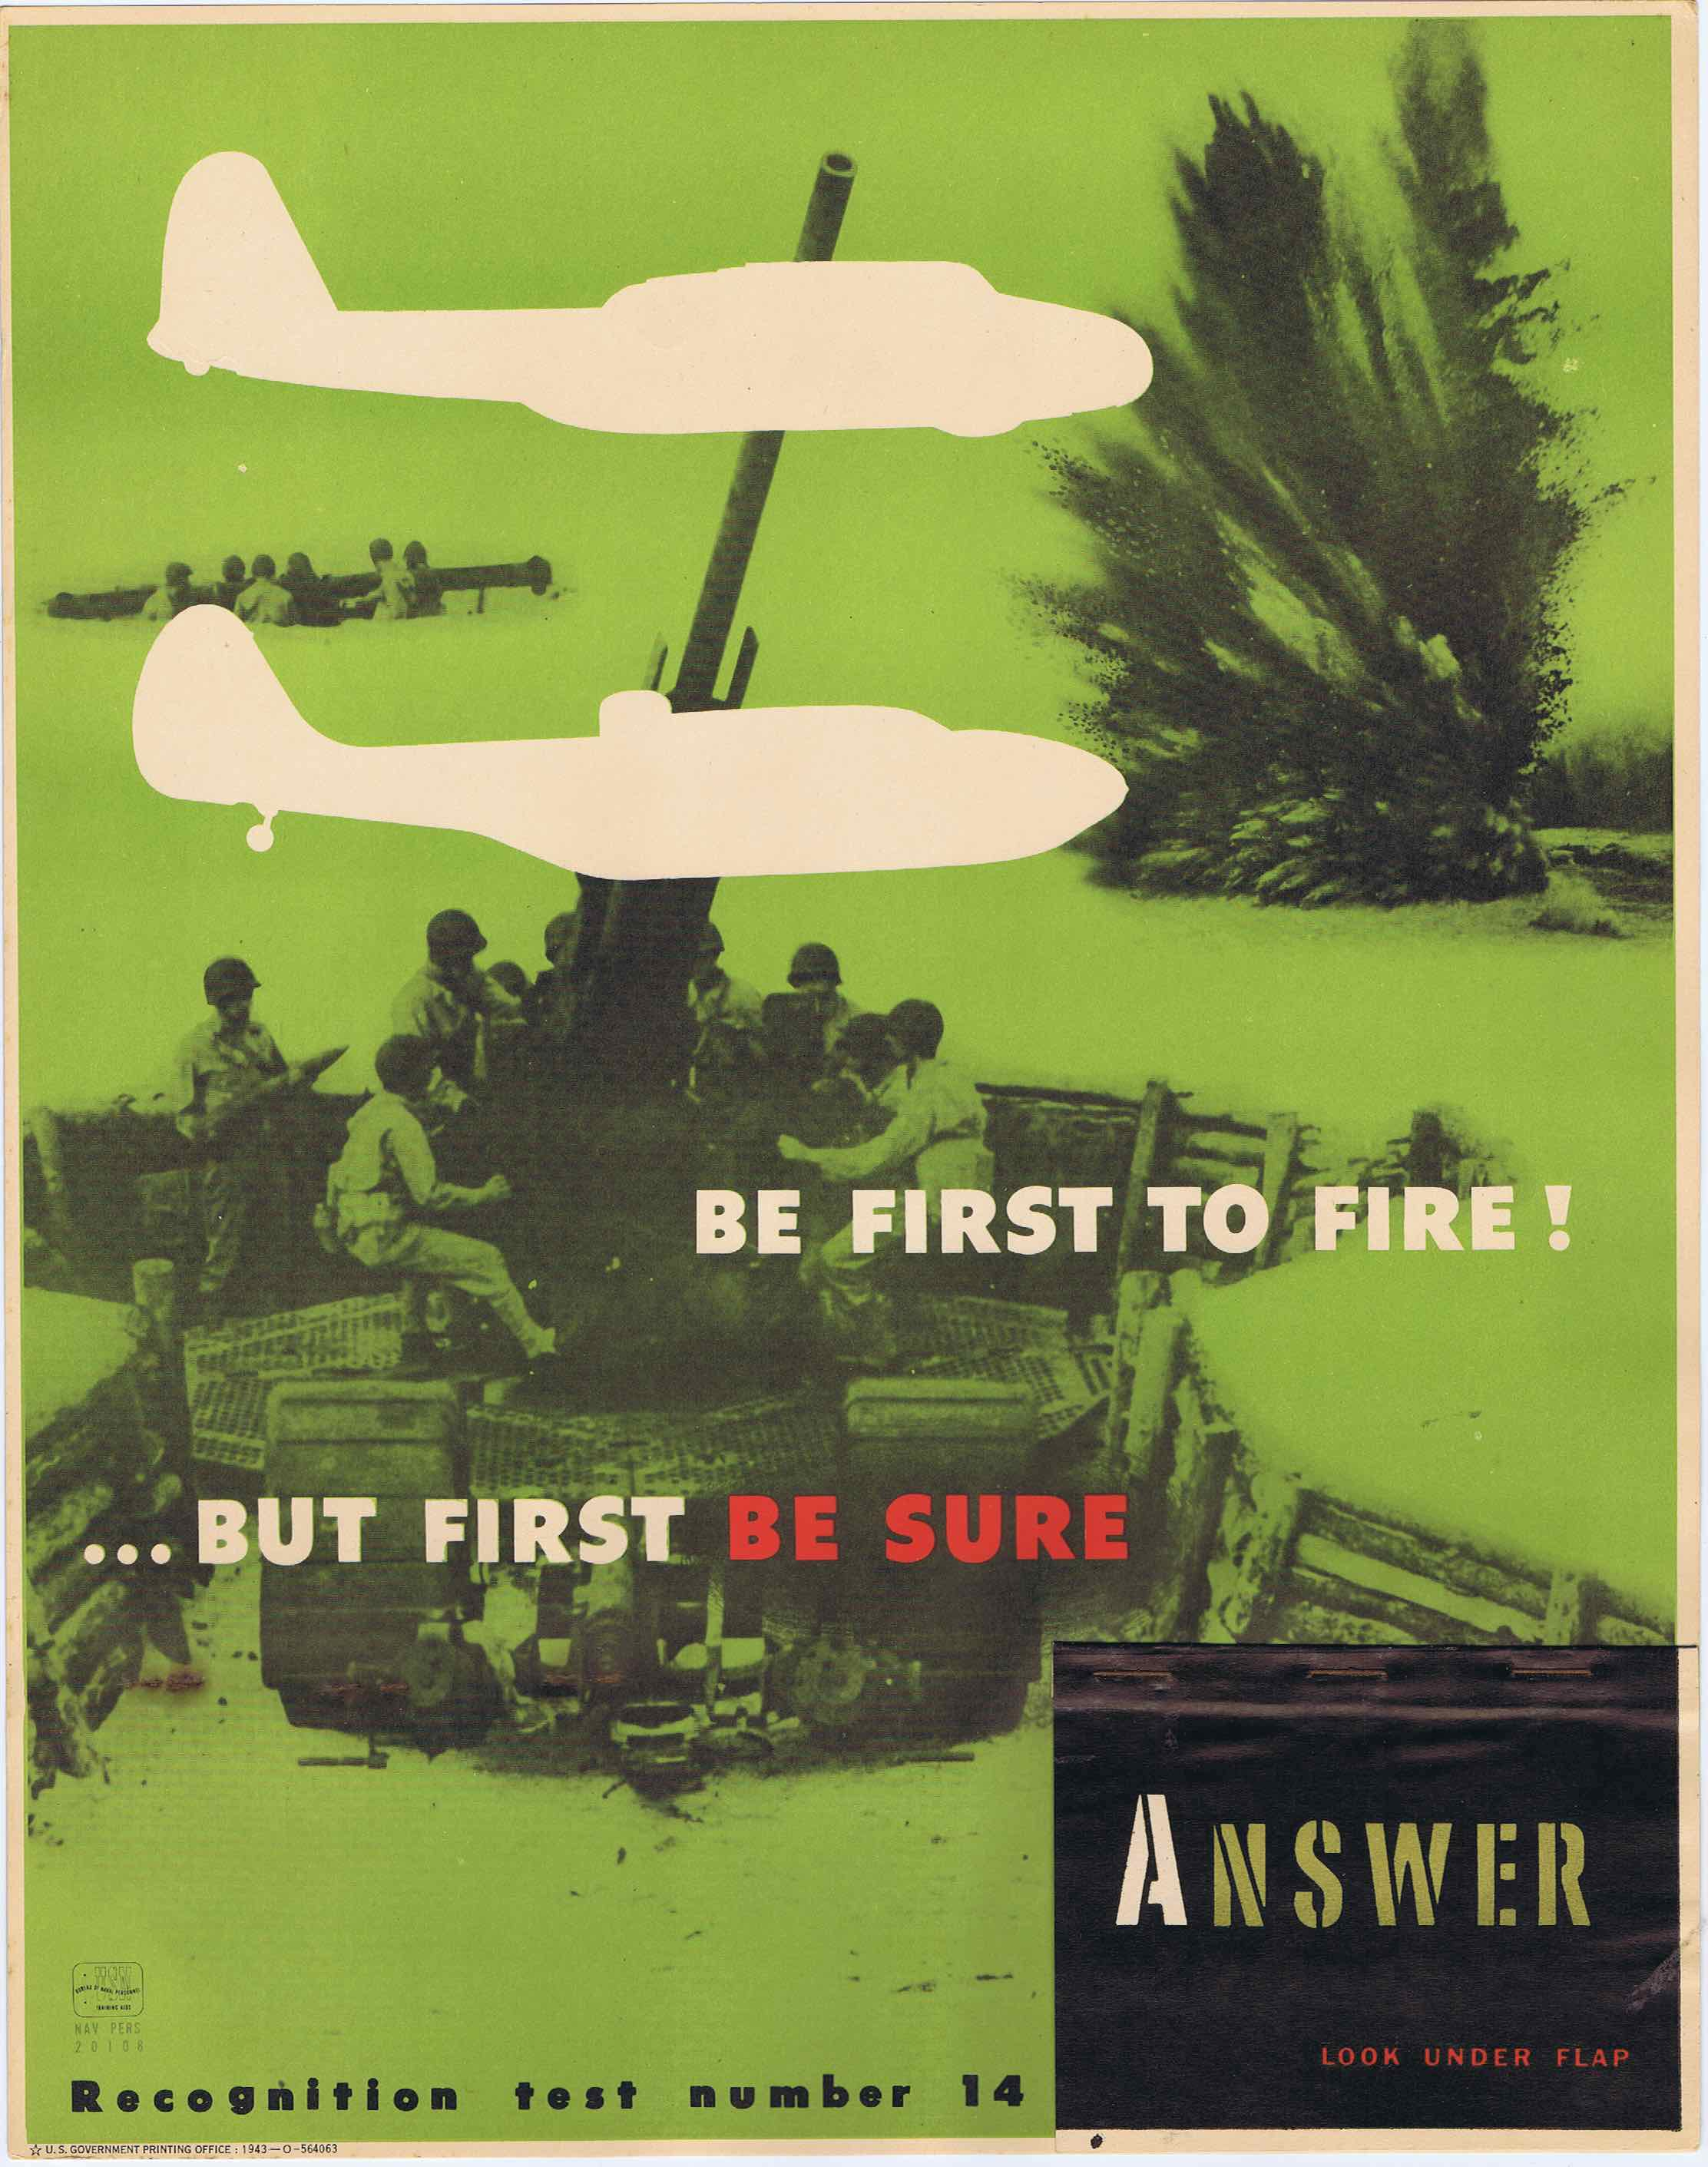 J352BE FIRST TO FIRE! …BUT FIRST BE SURE